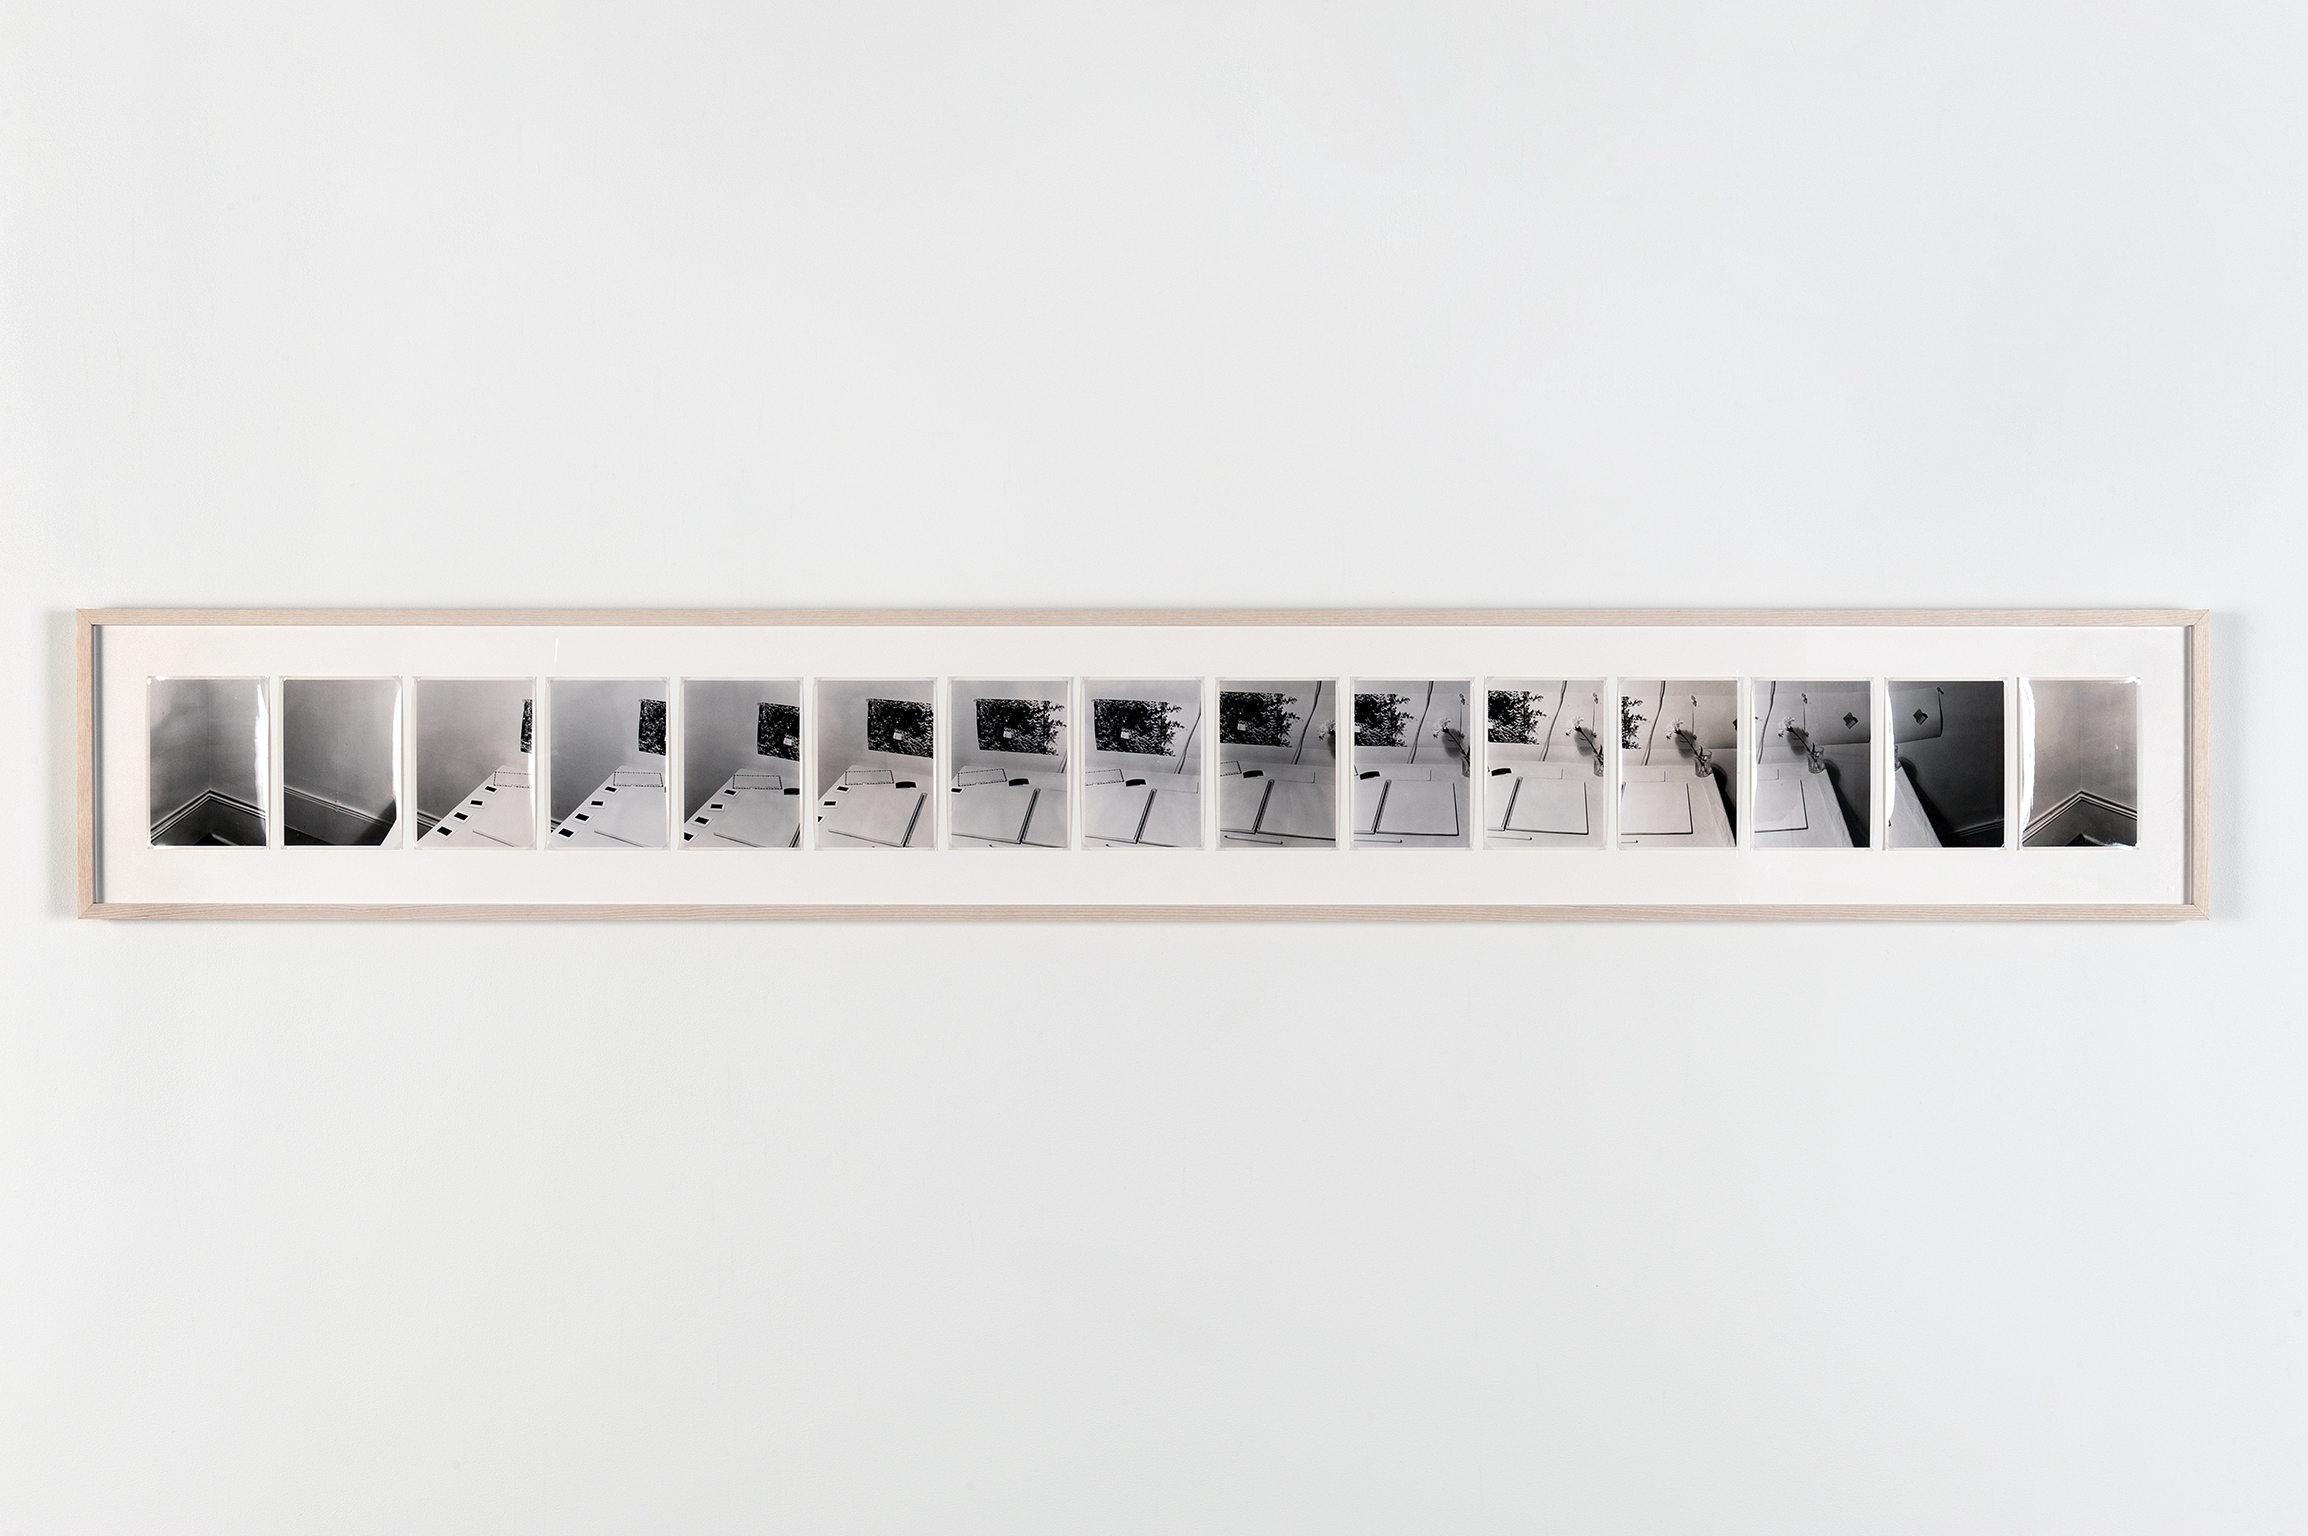 Robert Kleyn, Table Pan, 1974, black and white photographs, 13 x 88 in. (32 x 22 cm)   by